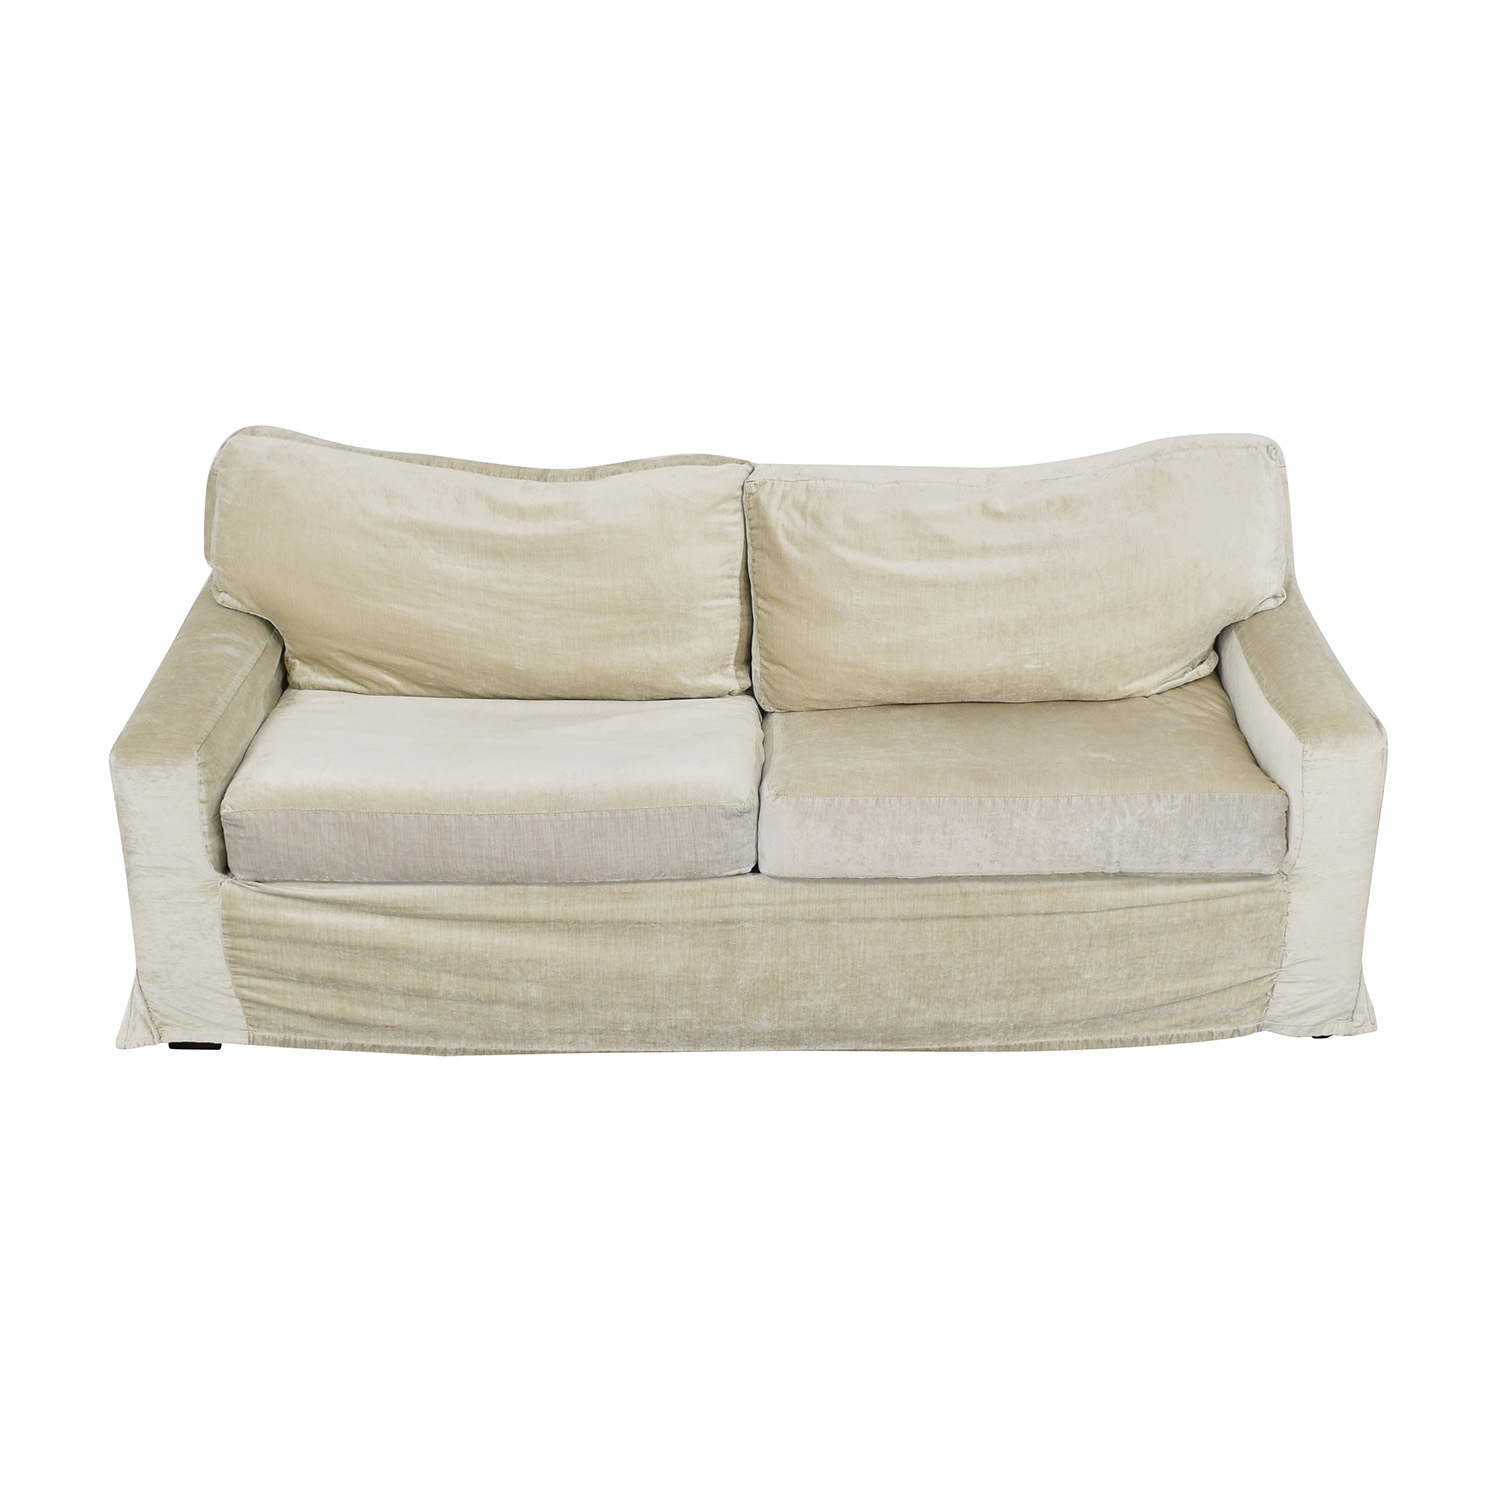 Mitchell Gold + Bob Williams Dominique Slipcovered Queen Sleeper Sofa sale